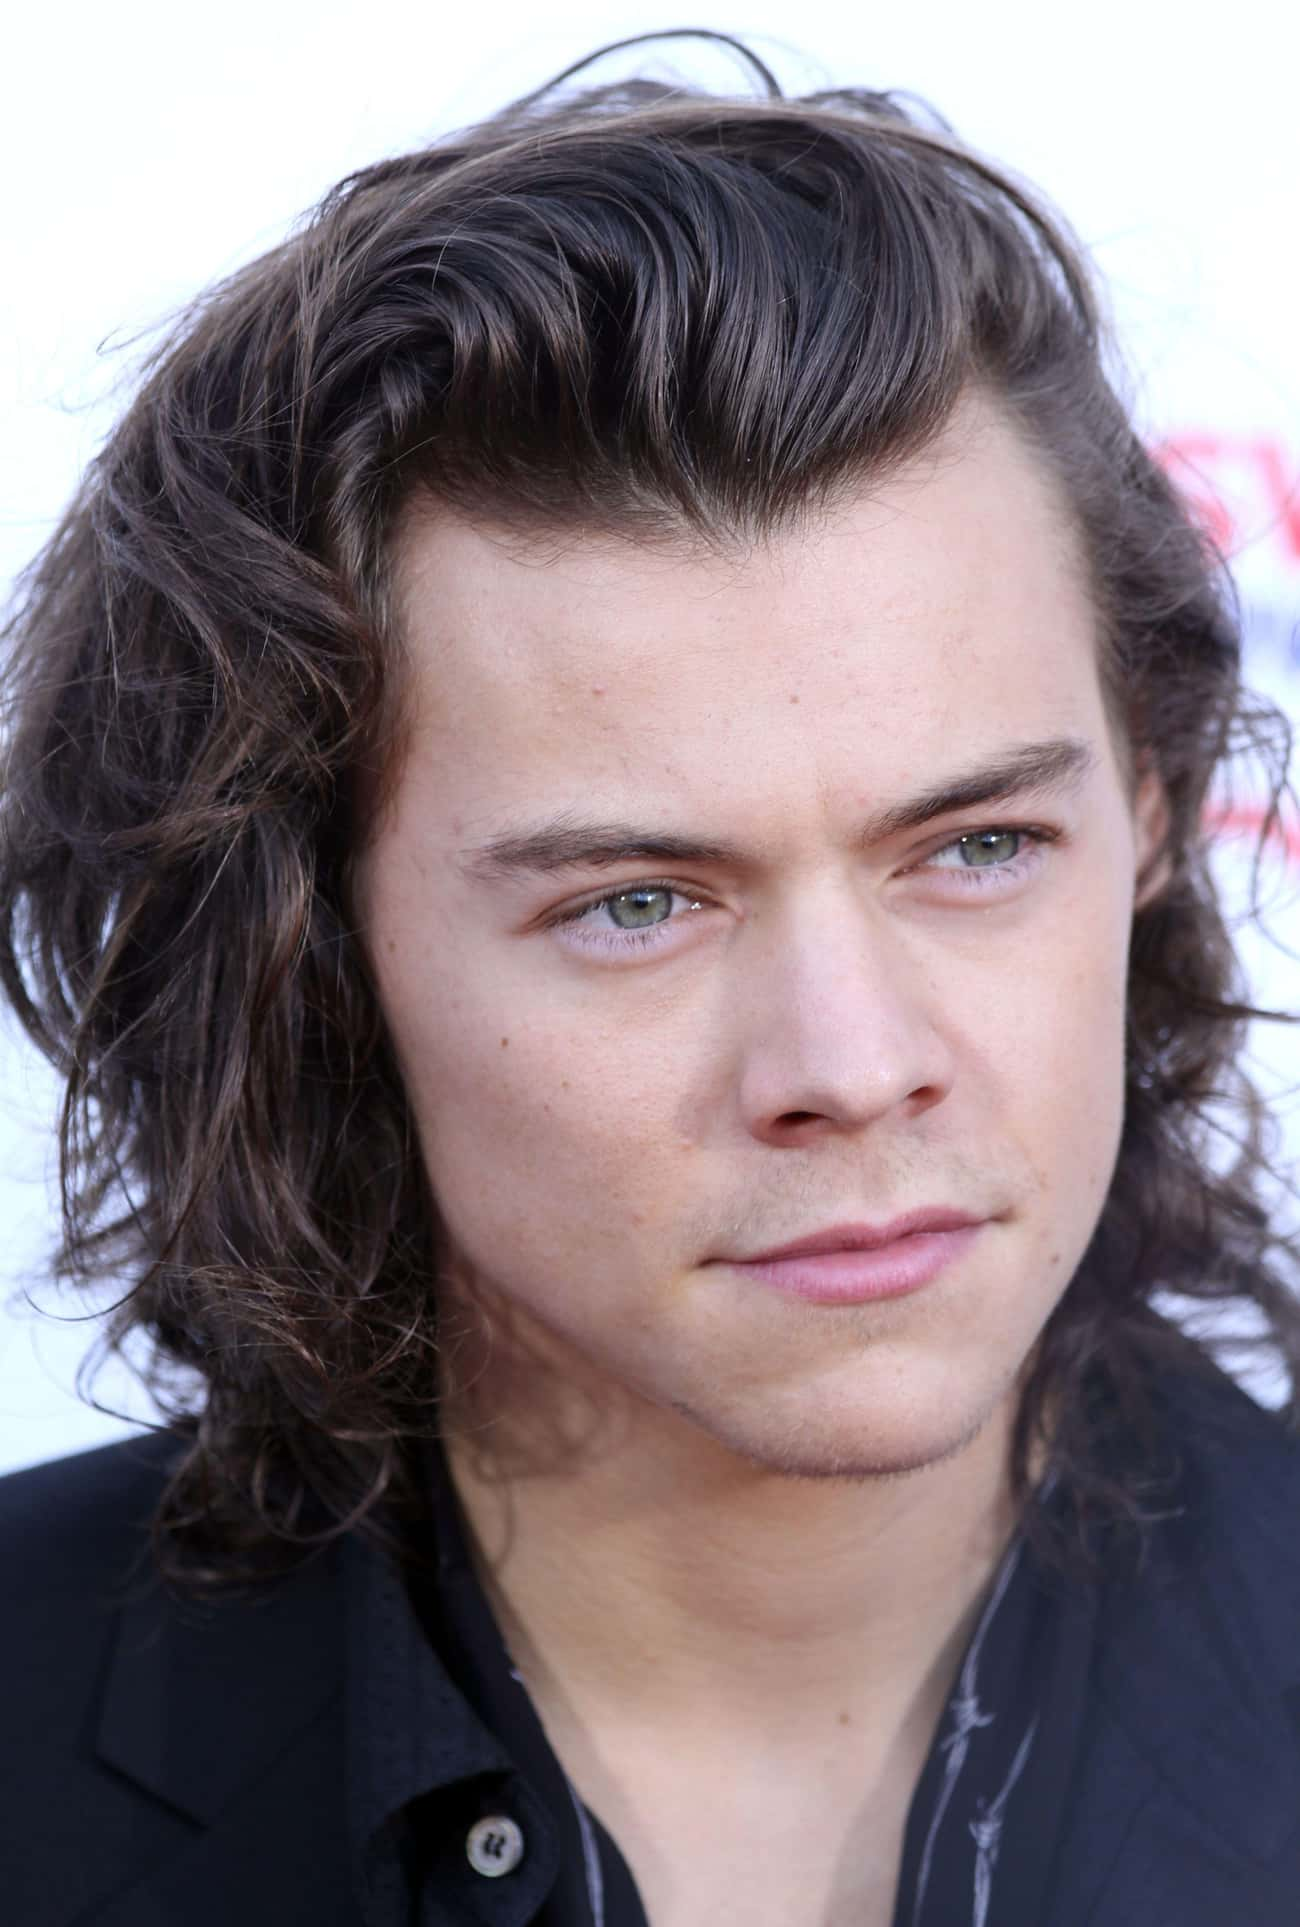 Harry Styles Is One Of The Most Famous Pop Stars In The UK